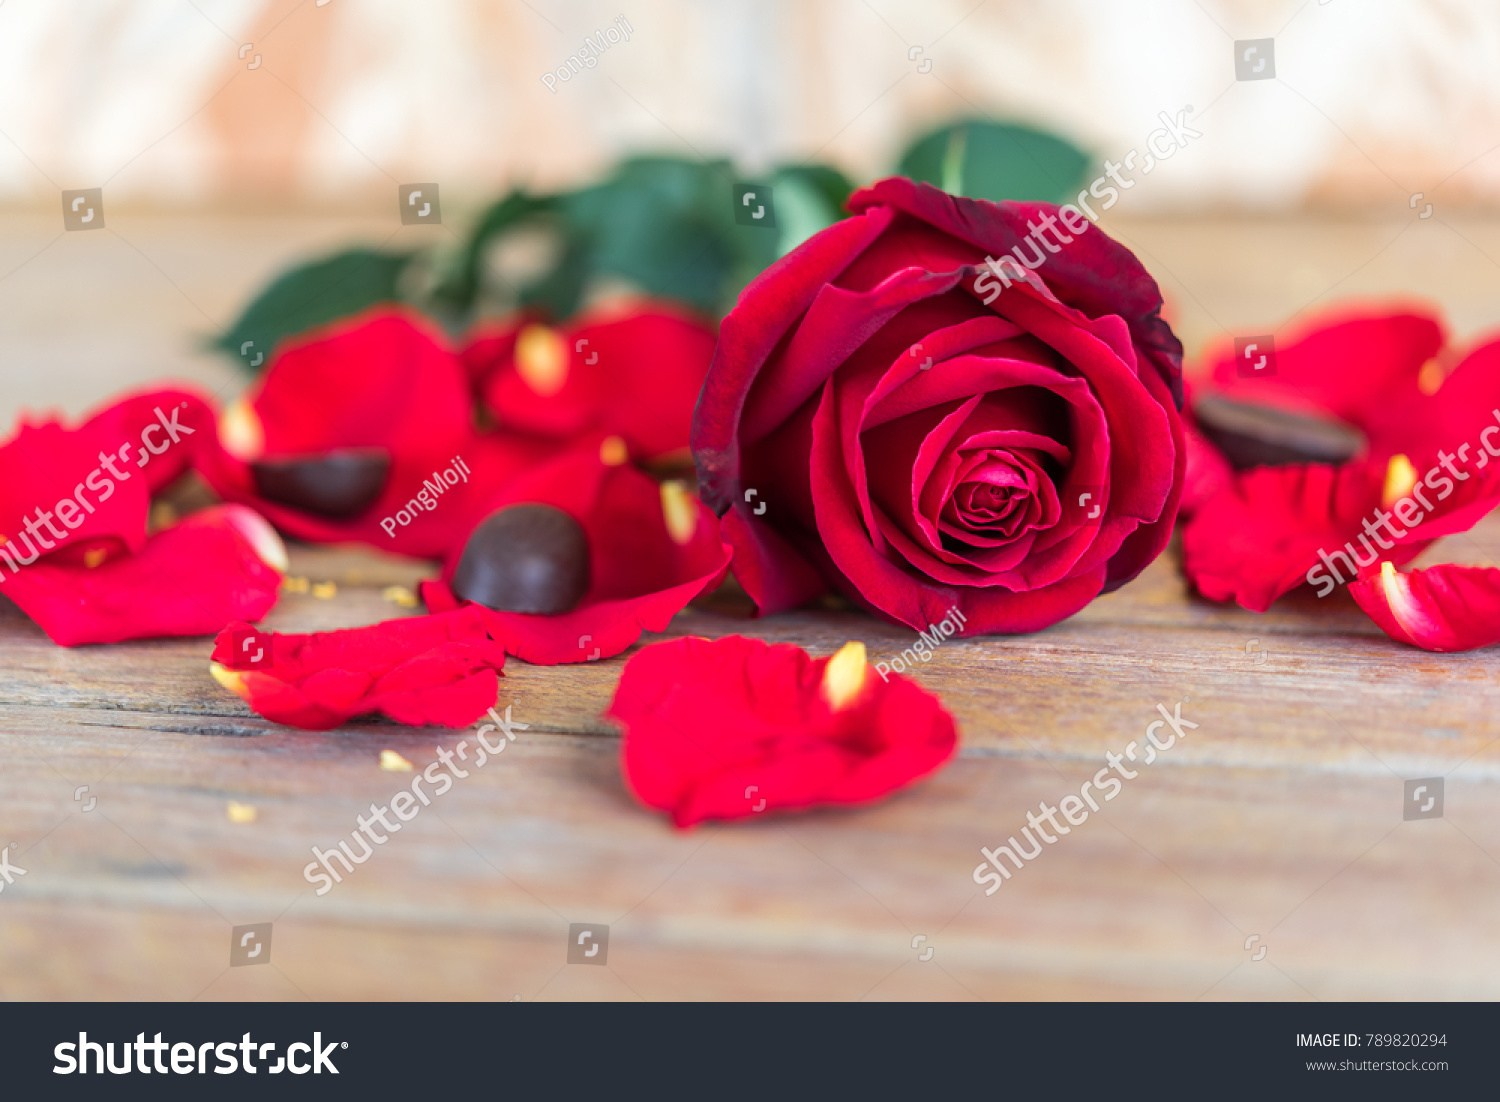 Red rose flower nature beautiful flowers stock photo edit now red rose flower nature beautiful flowers from the garden and petal of red rose flower and izmirmasajfo